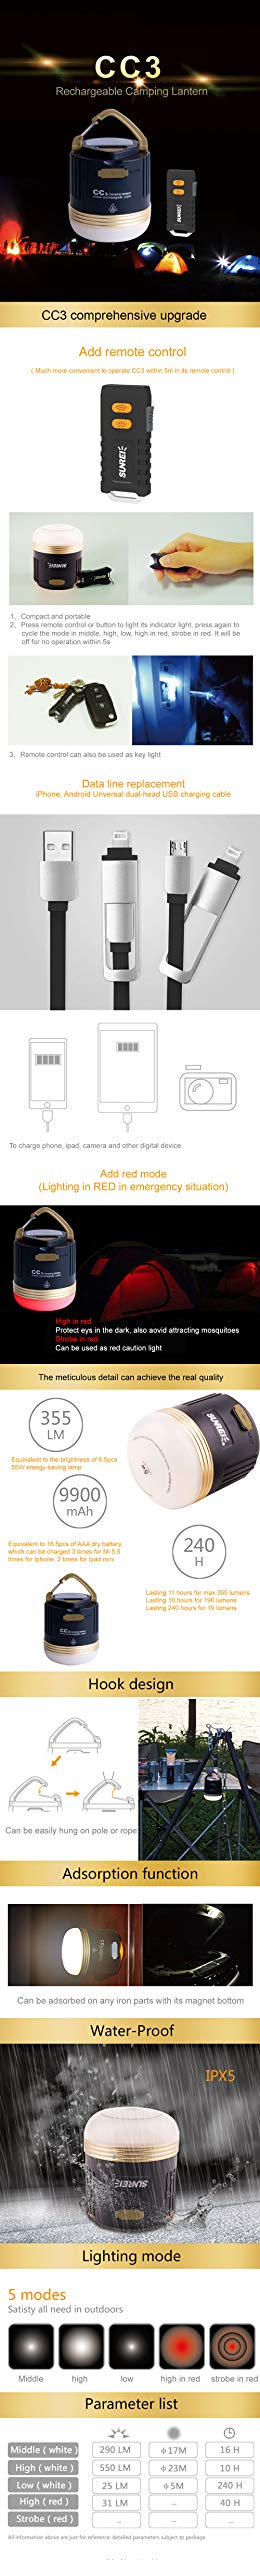 Candora Military Grade Camping Lantern Tactical Lantern COB LED with Magnetic as Emergency Power Source by Candora